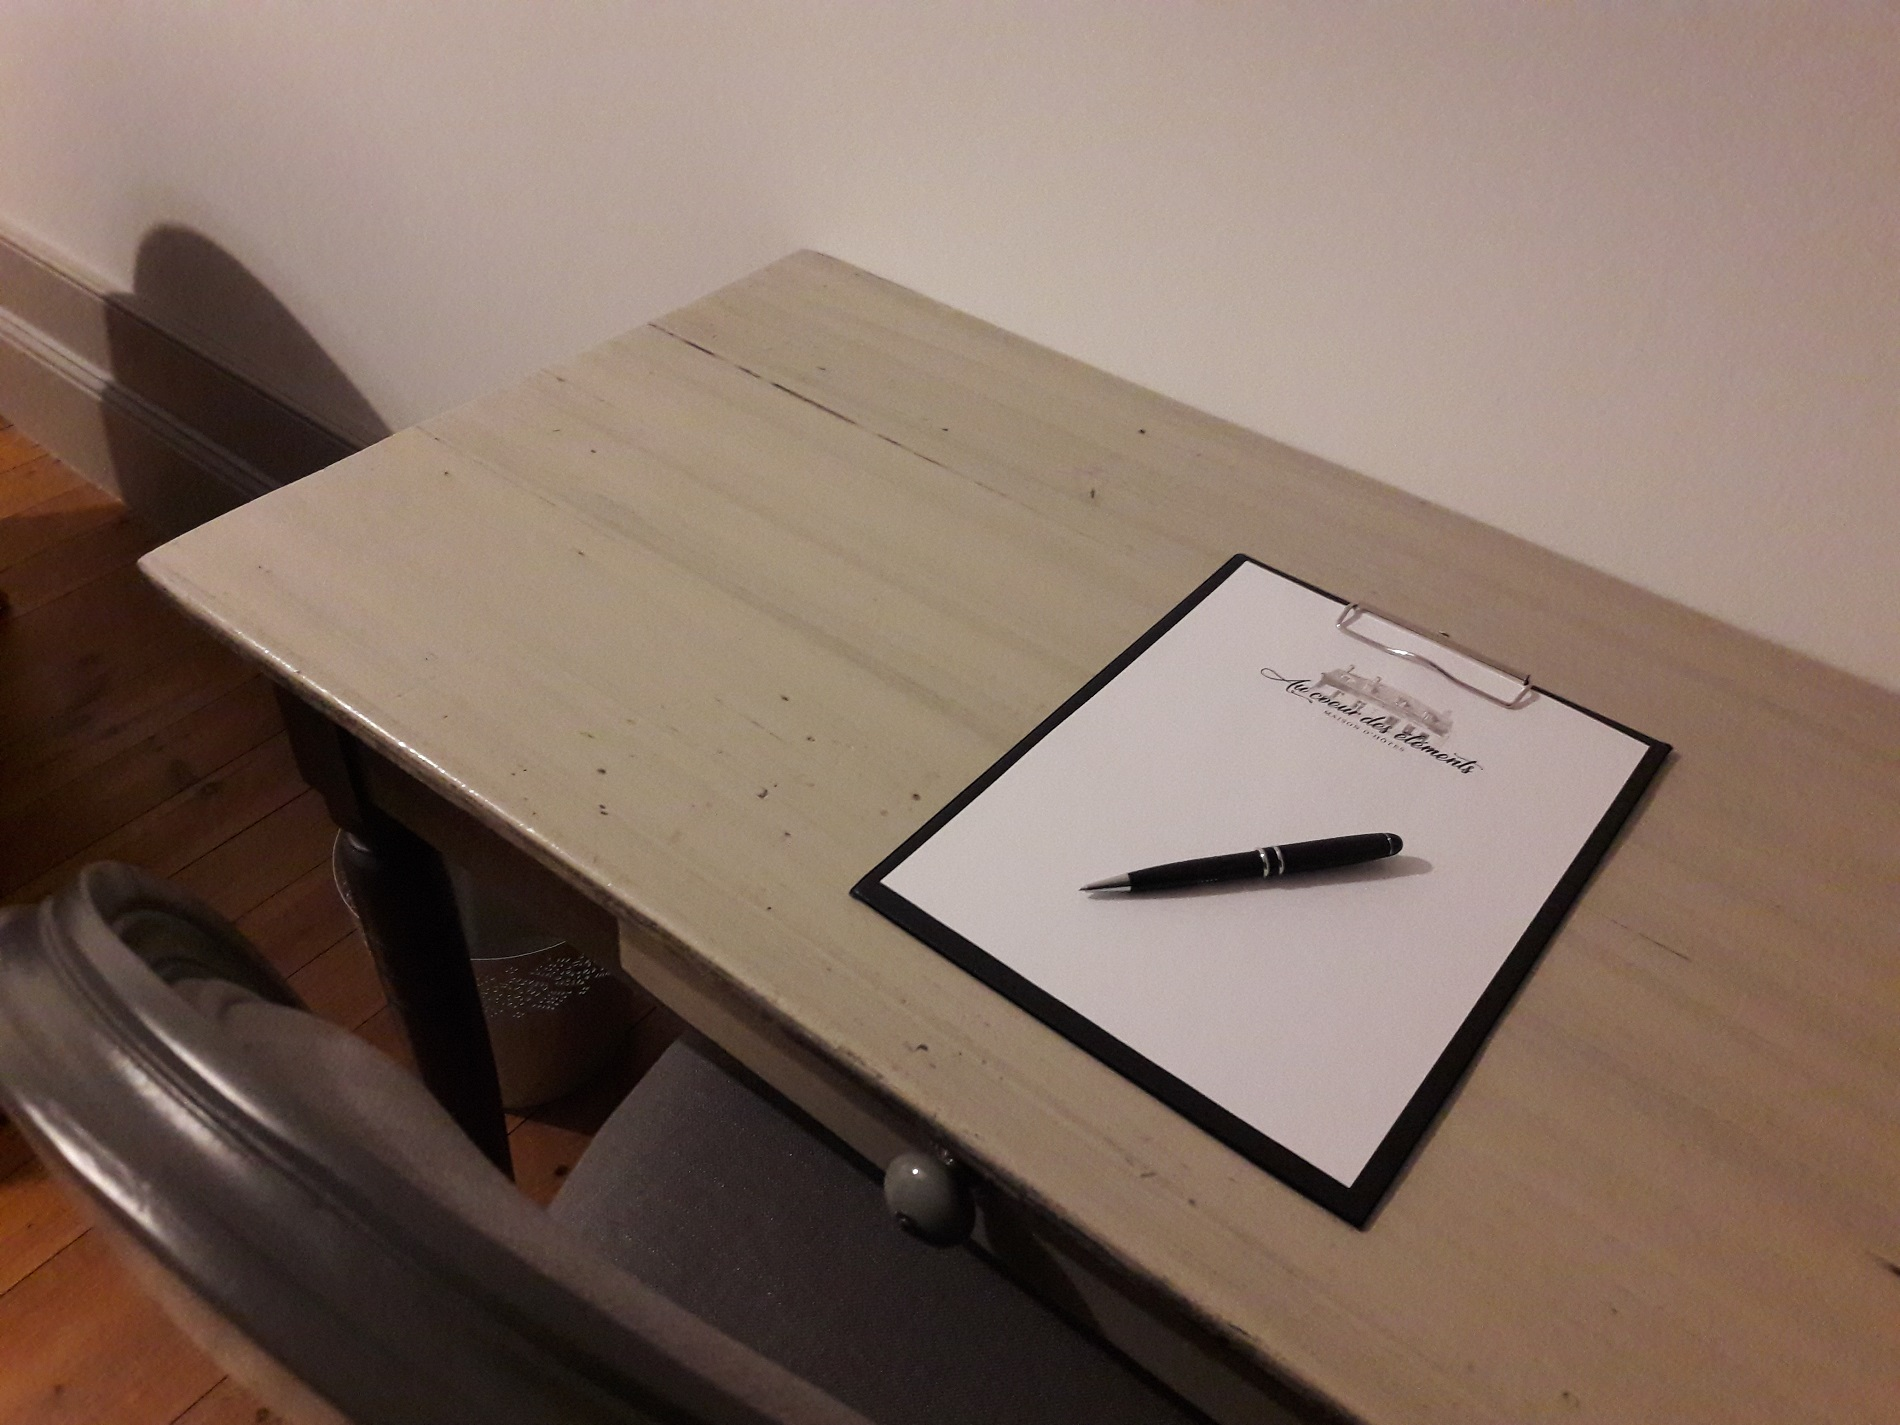 Desk with paper and pen for business use